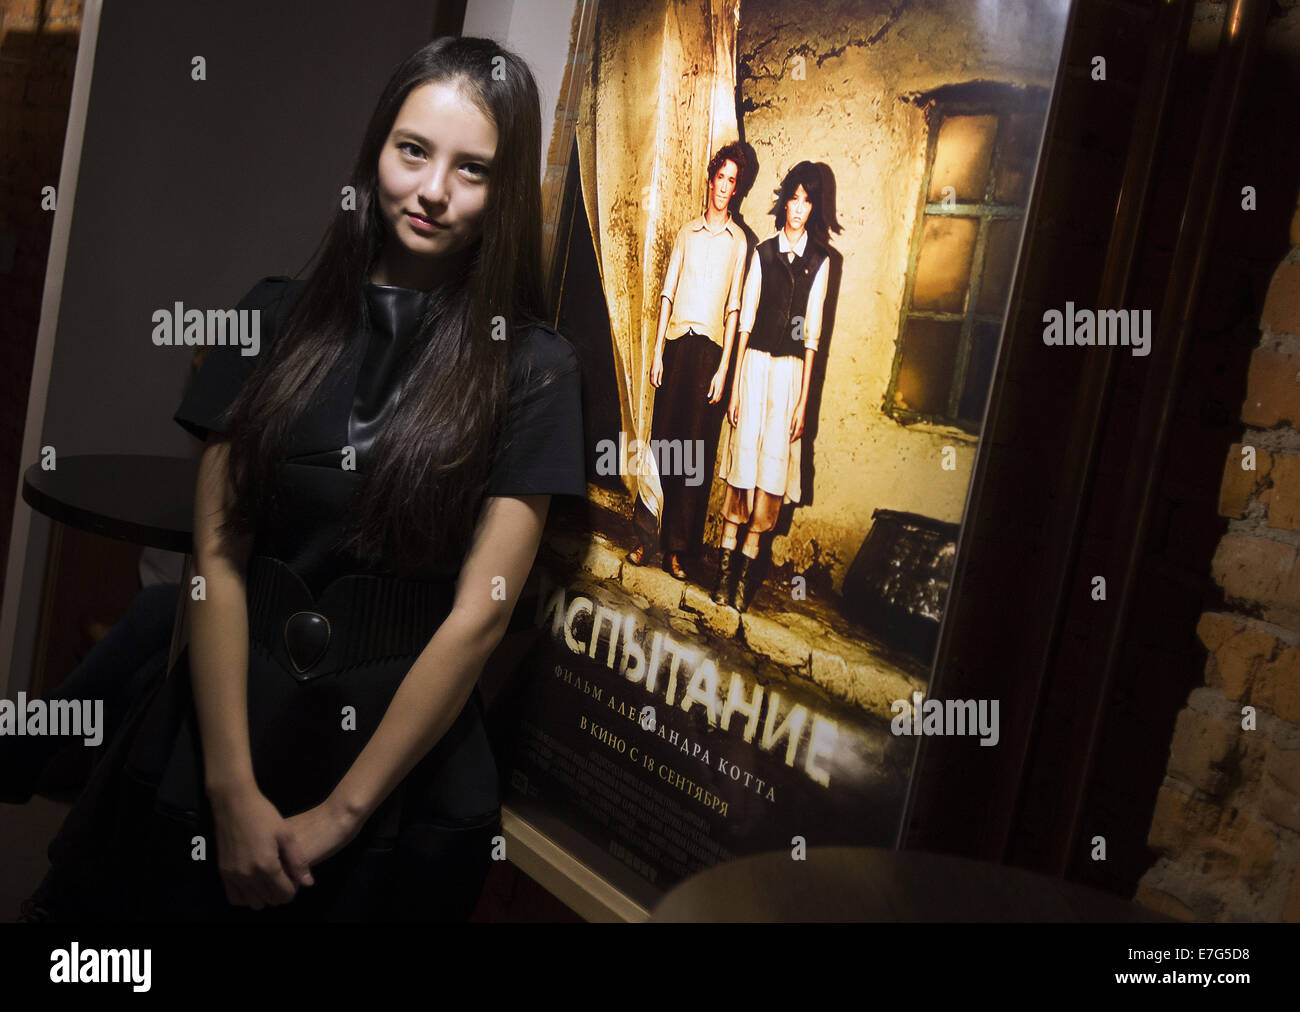 """Moscow, Russia. 17th Sep, 2014. Actress Elena An attends """"Trial"""" film premiere party at Pioner cinema. Credit:  - Stock Image"""